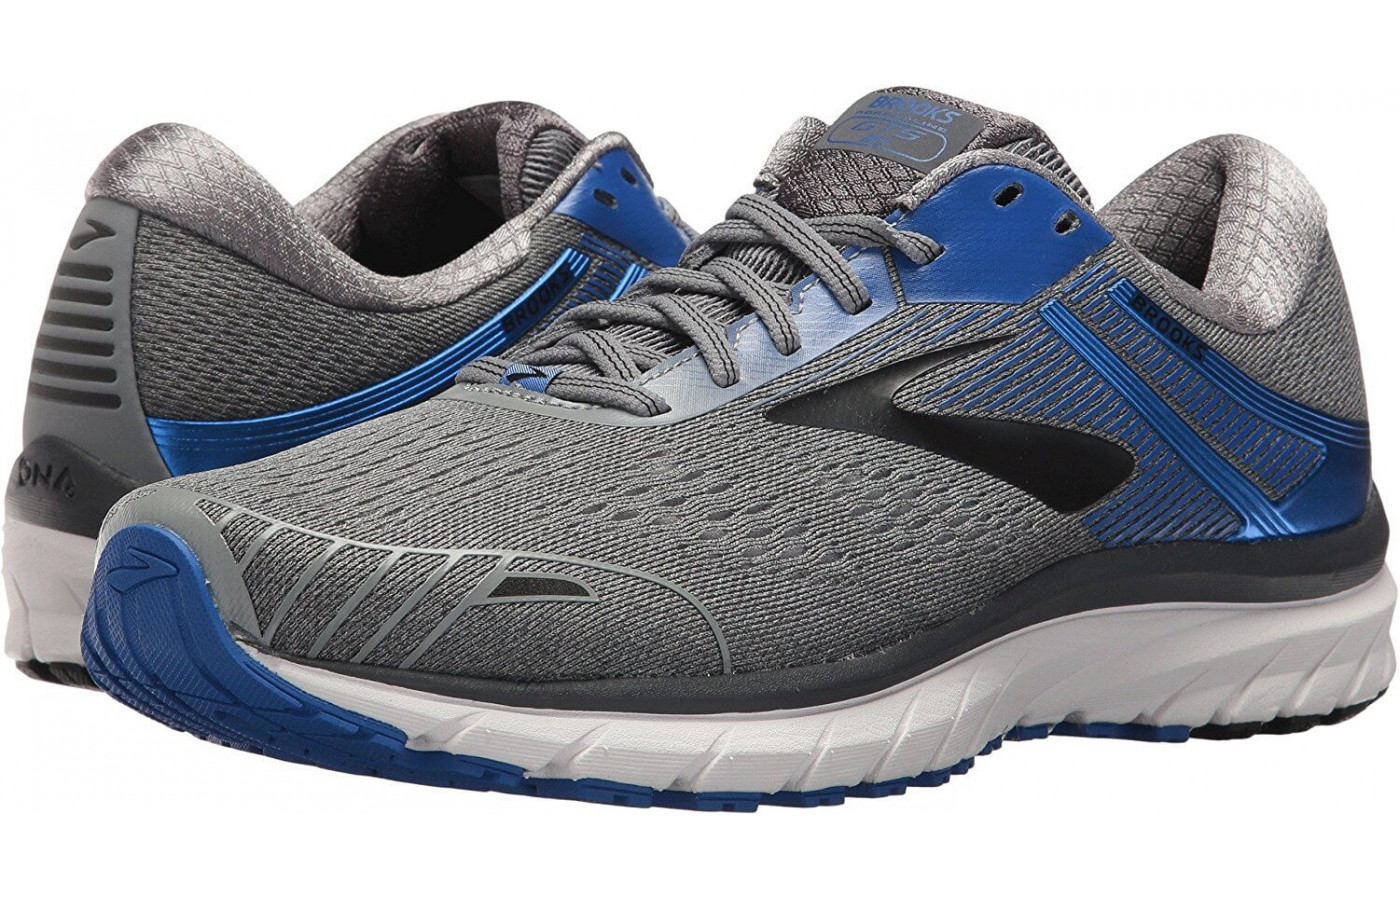 5db318a61b1 Runners love this shoe for its cushioning and support.